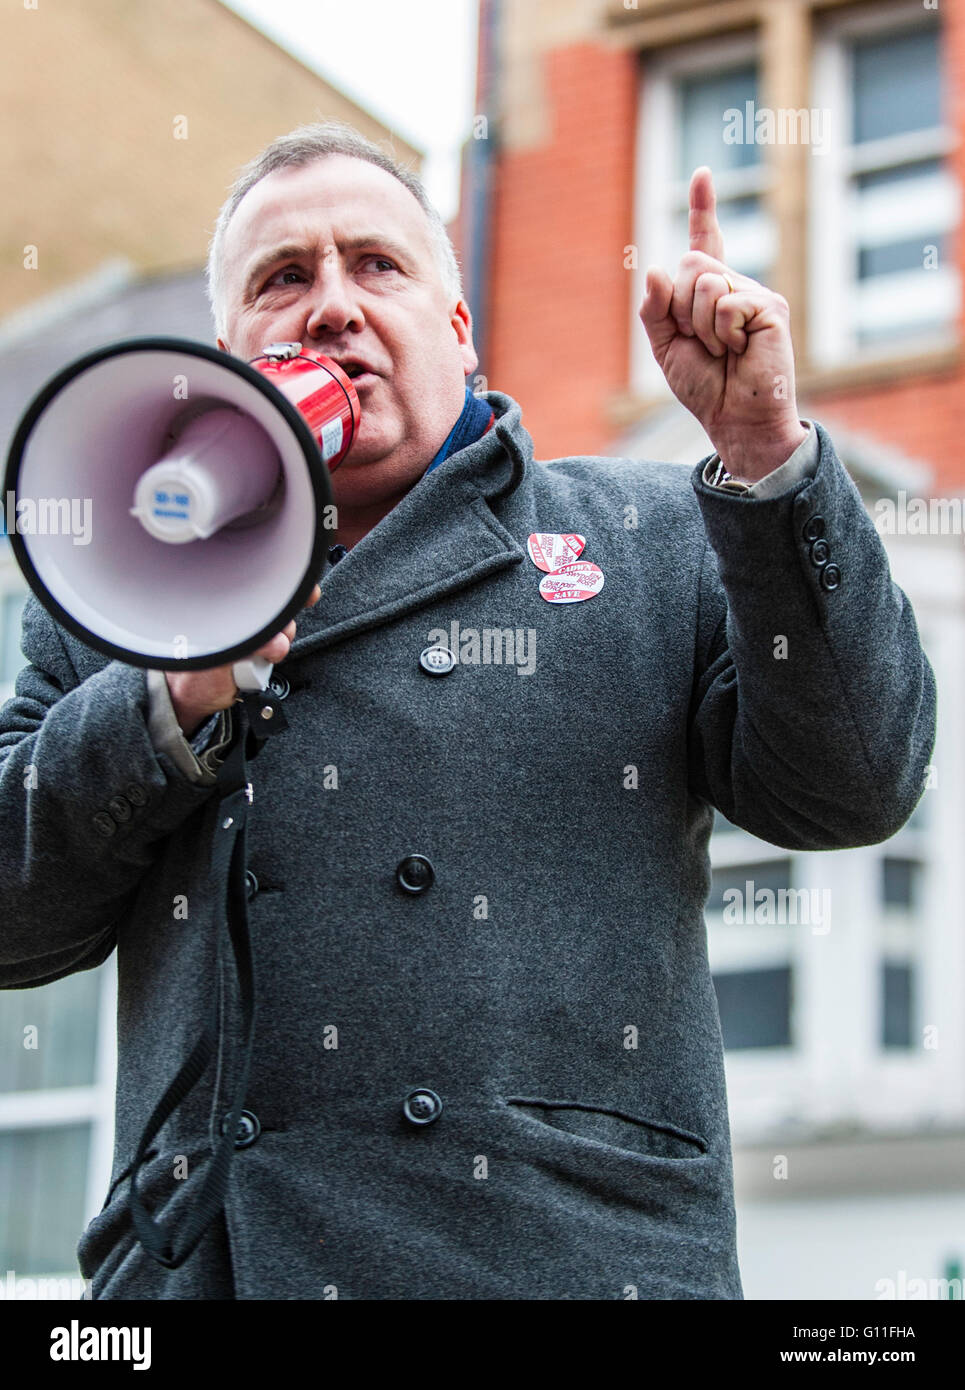 FILE PICTURES: Aberystwyth, Ceredigion, Wales, UK. 19th March, 2016.  MARK WILLIAMS MP announced as the new leader - Stock Image